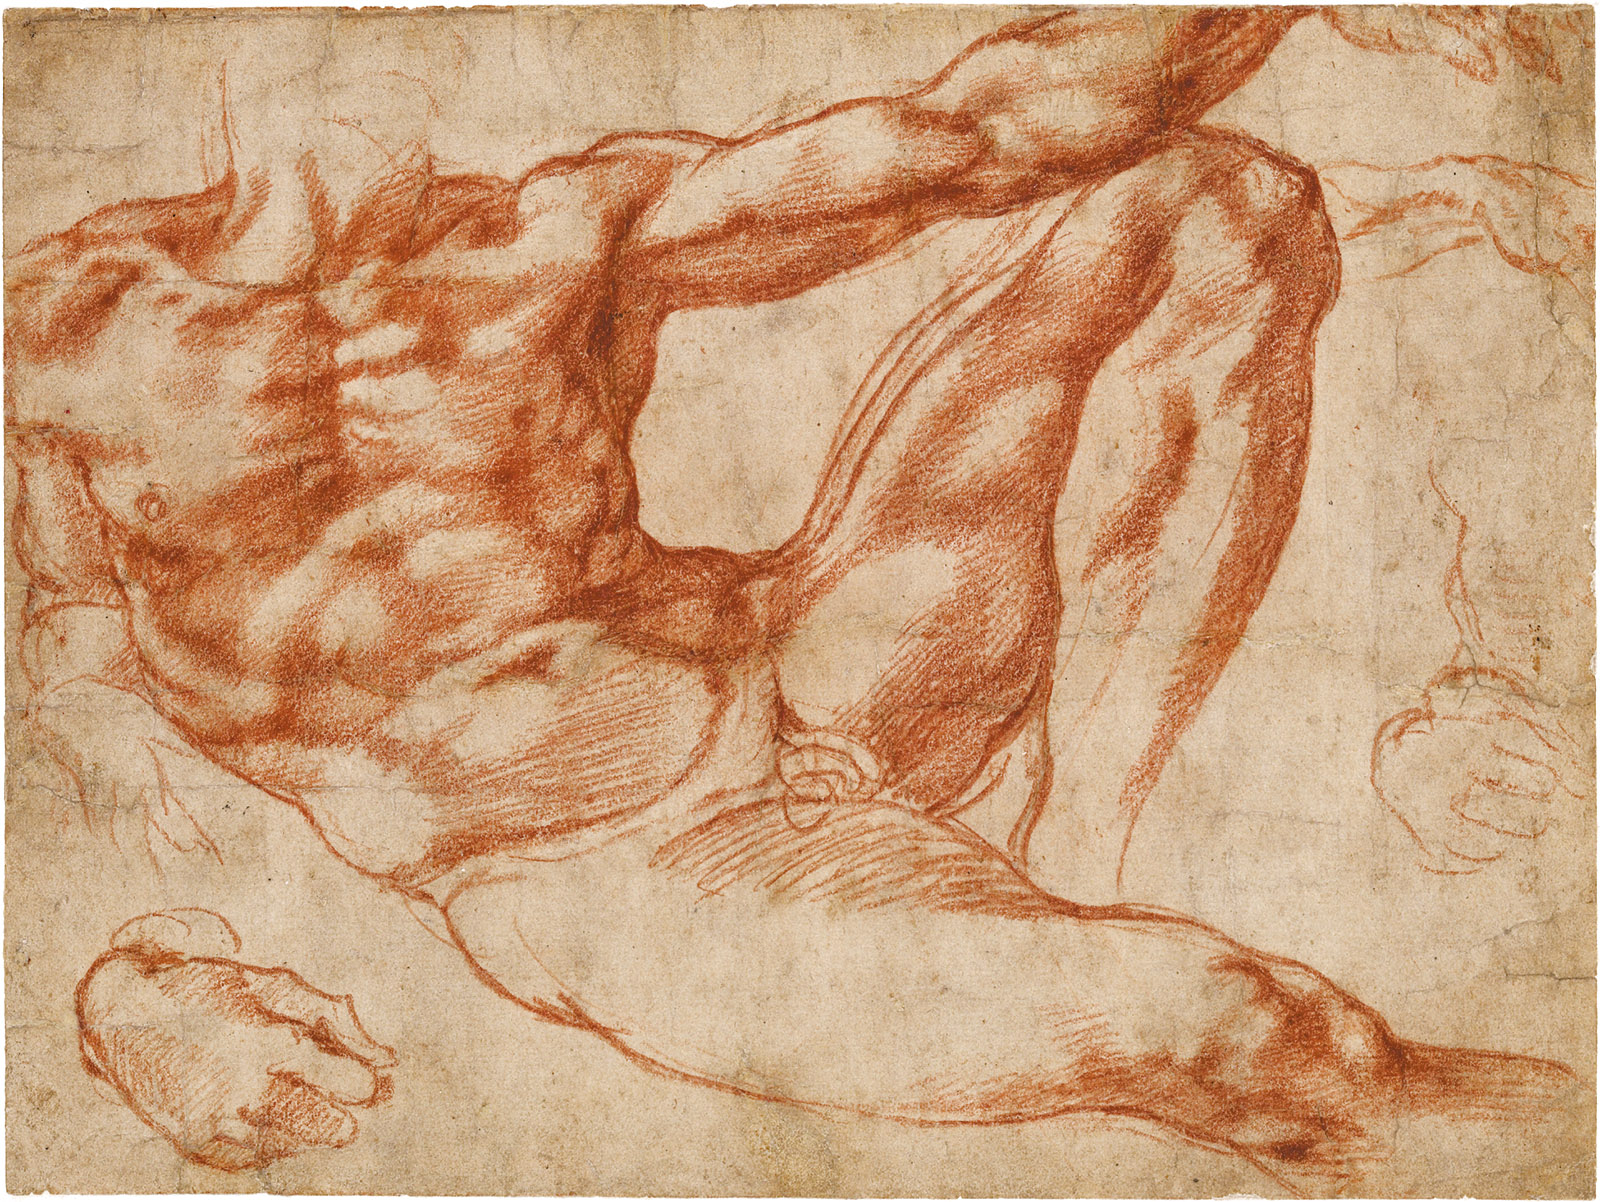 Michelangelo: Studies for Adam in the Fresco the Creation of Adam on the Sistine Chapel Ceiling, red chalk, 7 5/8 x 10 3/16 inches, 1511